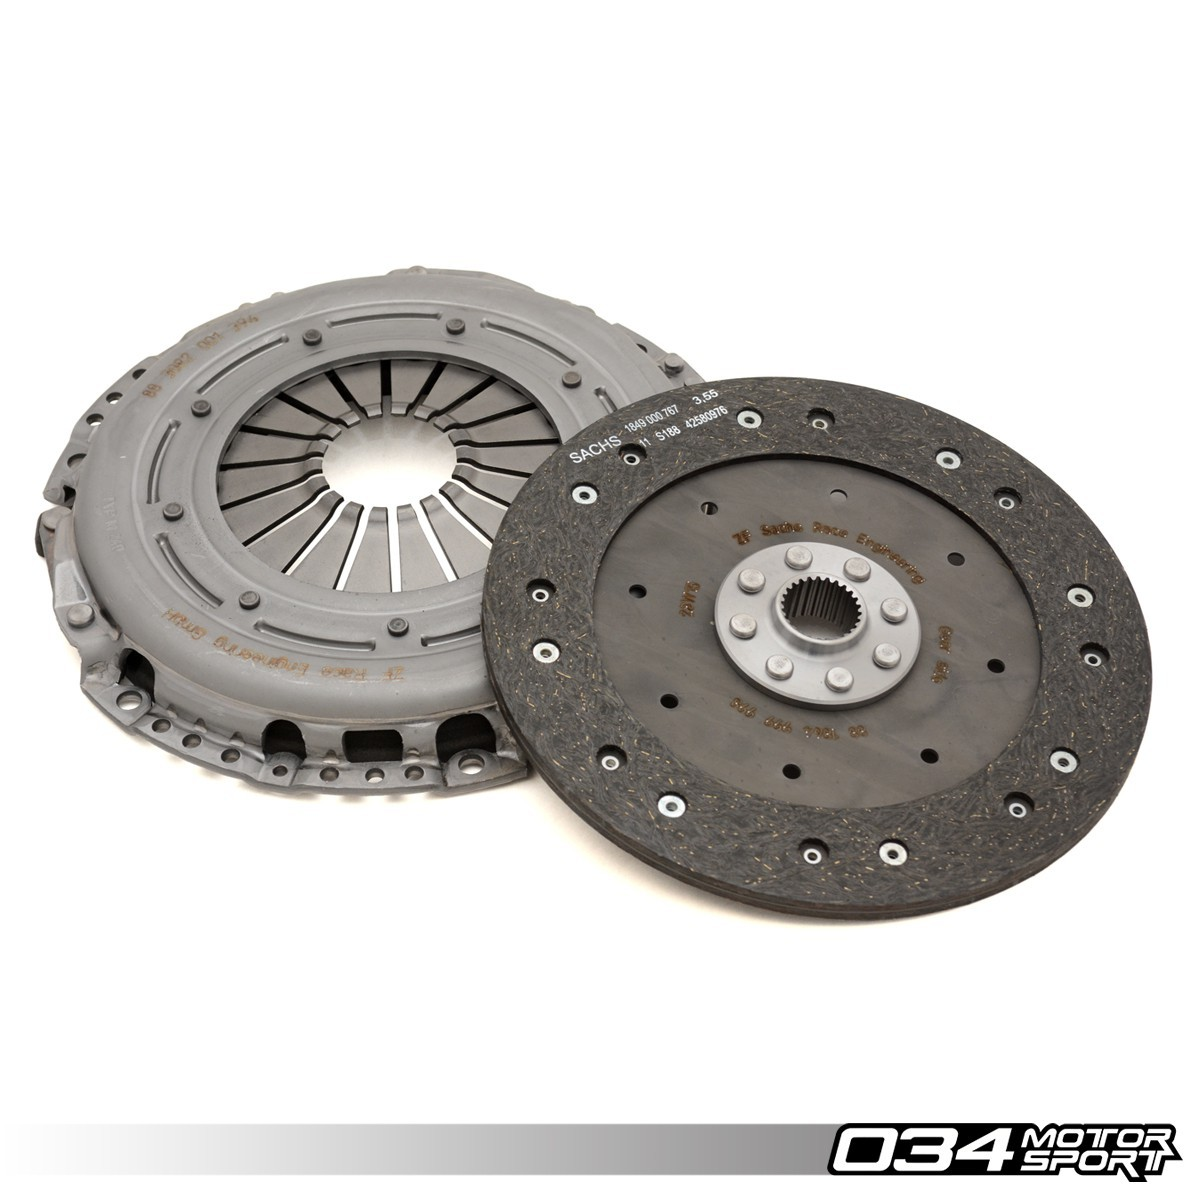 Sachs Performance Clutch Kit for MkVII Volkswagen Golf R 2.0T Gen 3 | SPC-002352.999502